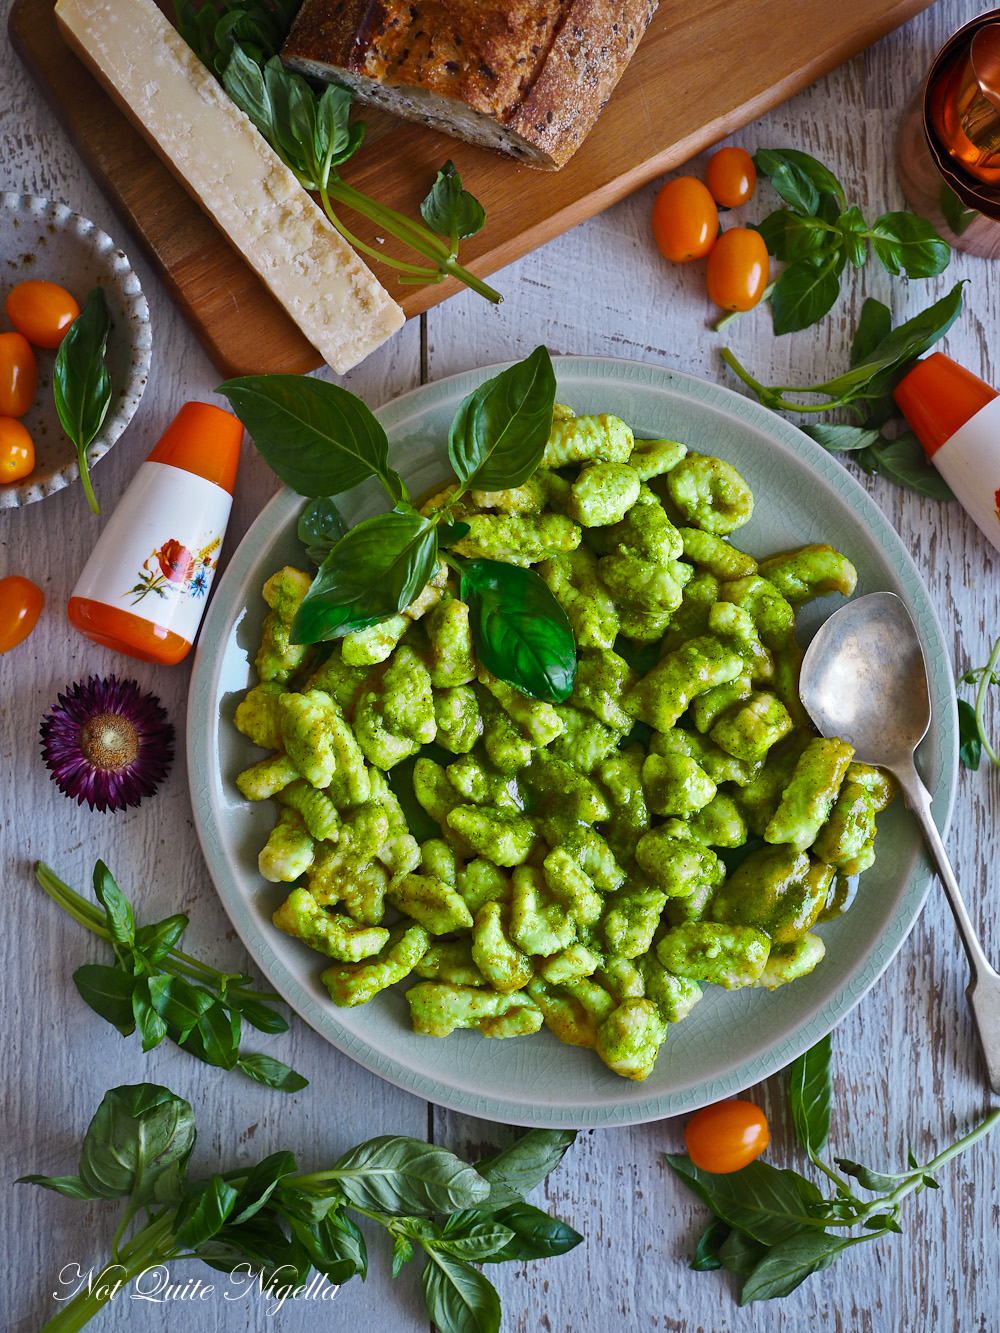 Homemade Gnocchi With Pistachio Almond Pesto